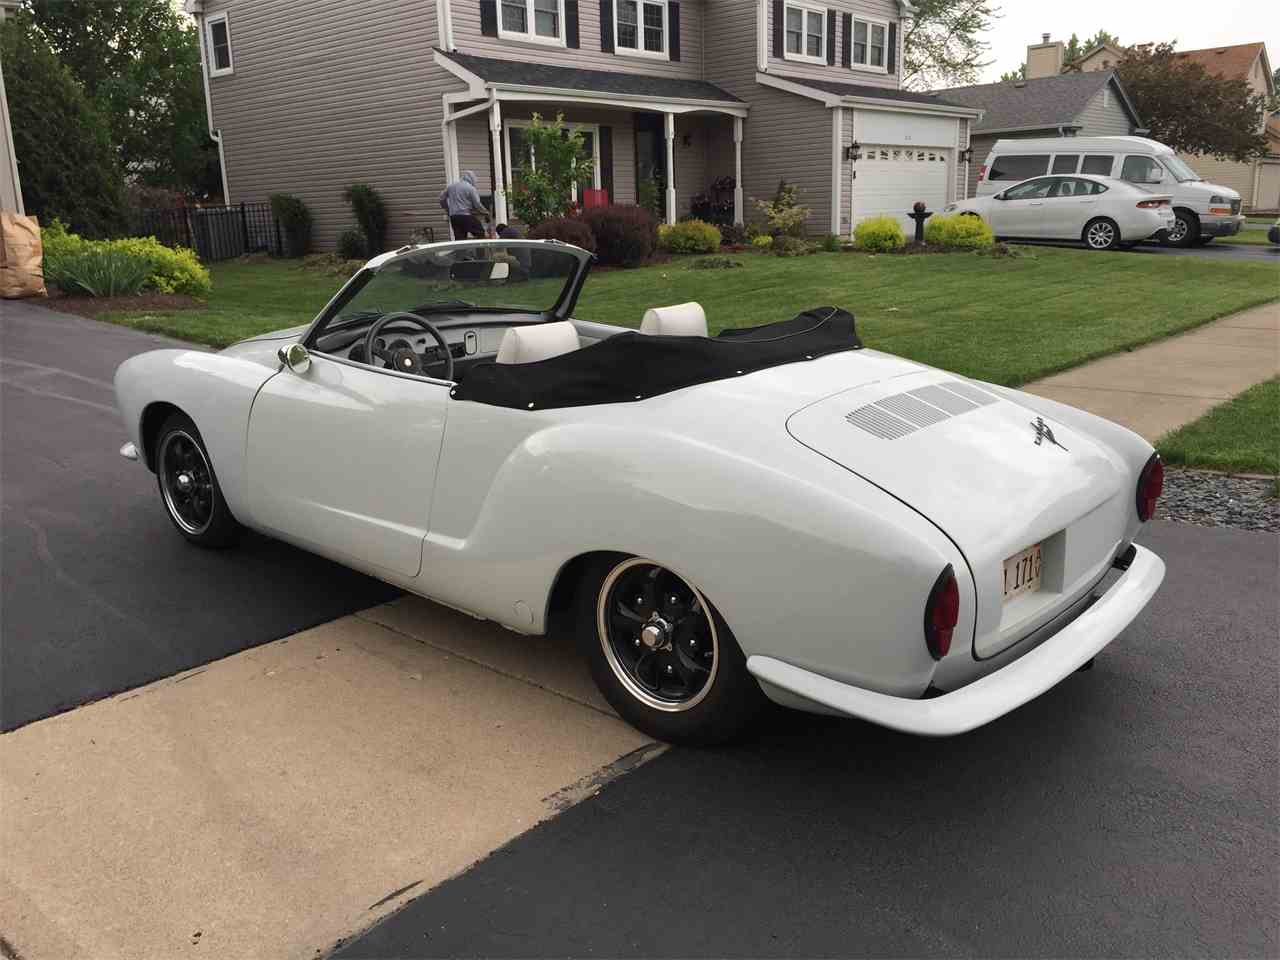 Large Picture of 1964 Volkswagen Karmann Ghia - $14,000.00 Offered by a Private Seller - L3BT